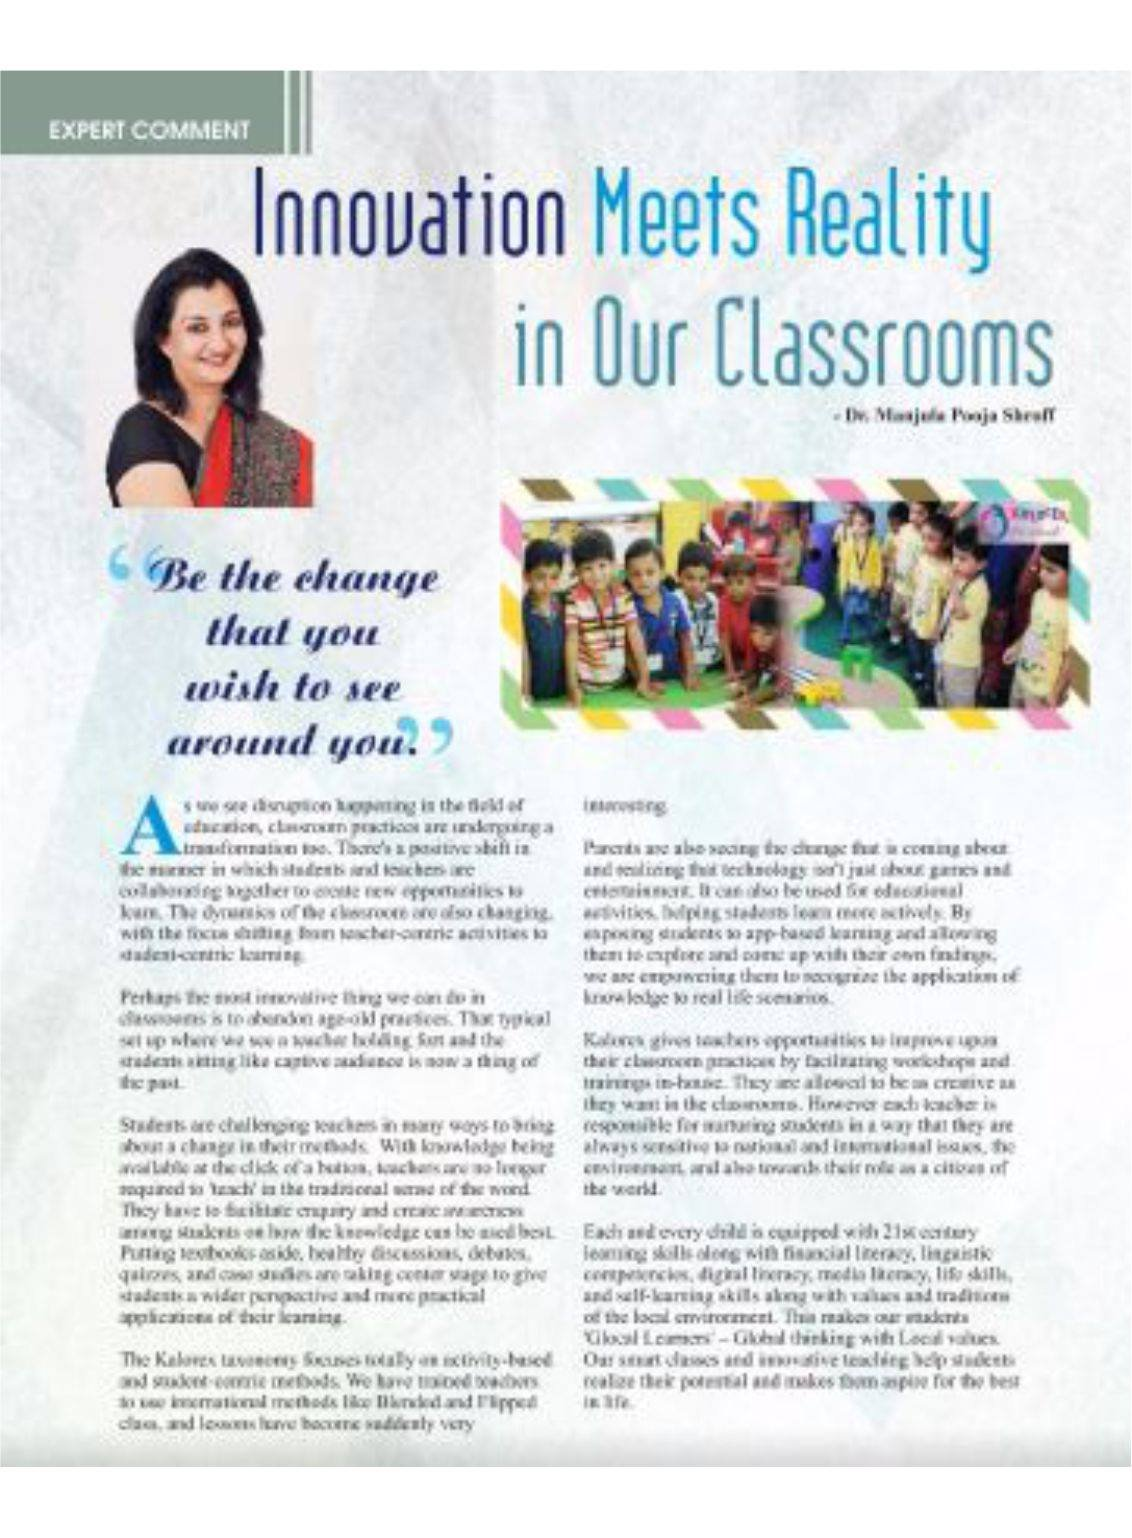 Talking about Innovative classrooms in Education Today magazine